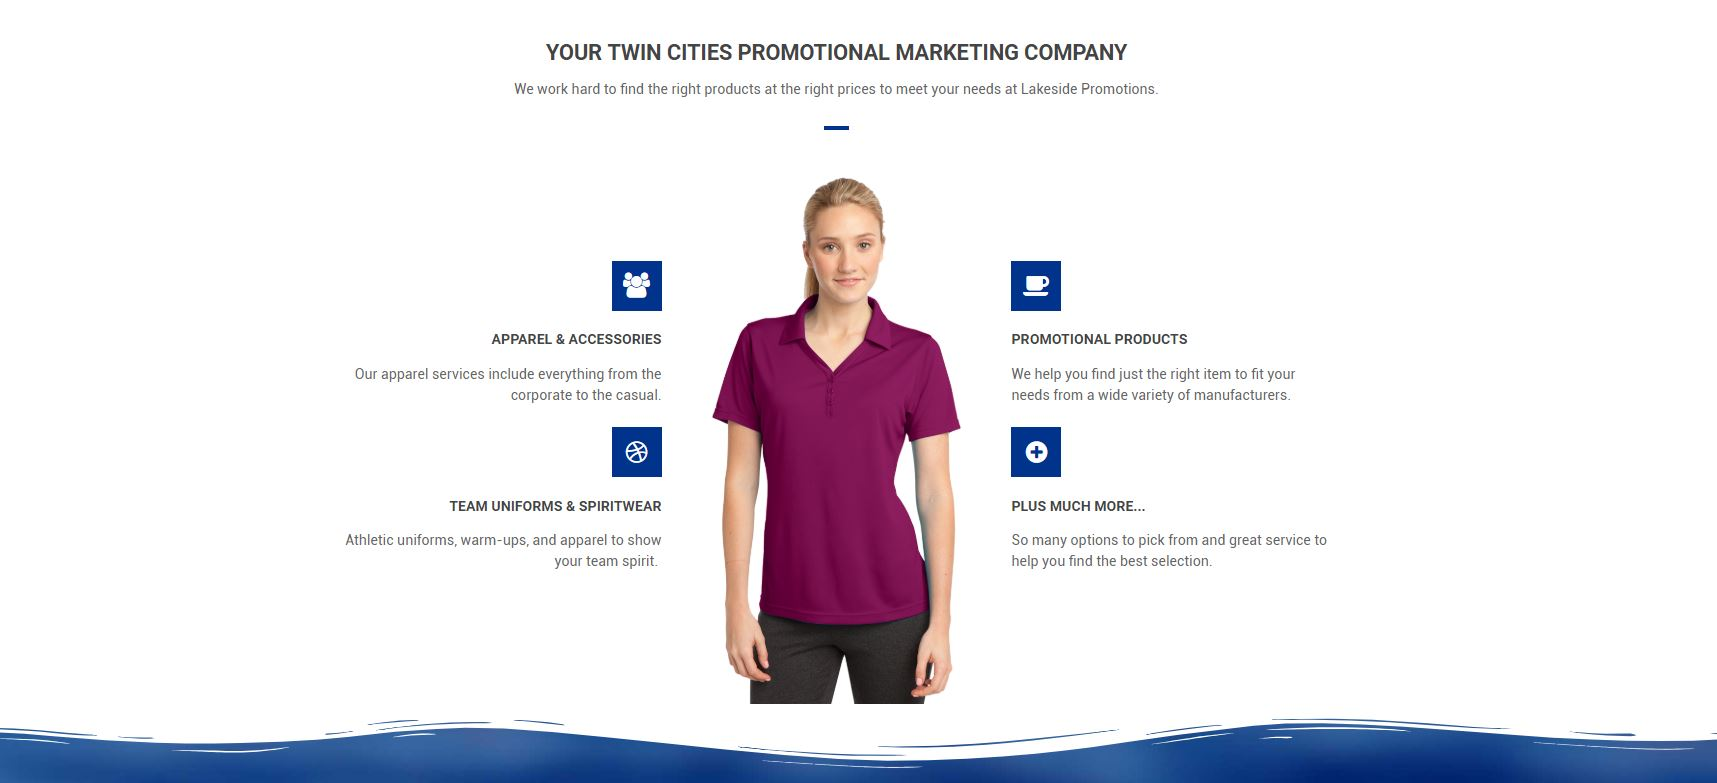 Lakeside Promotions Twin Cities